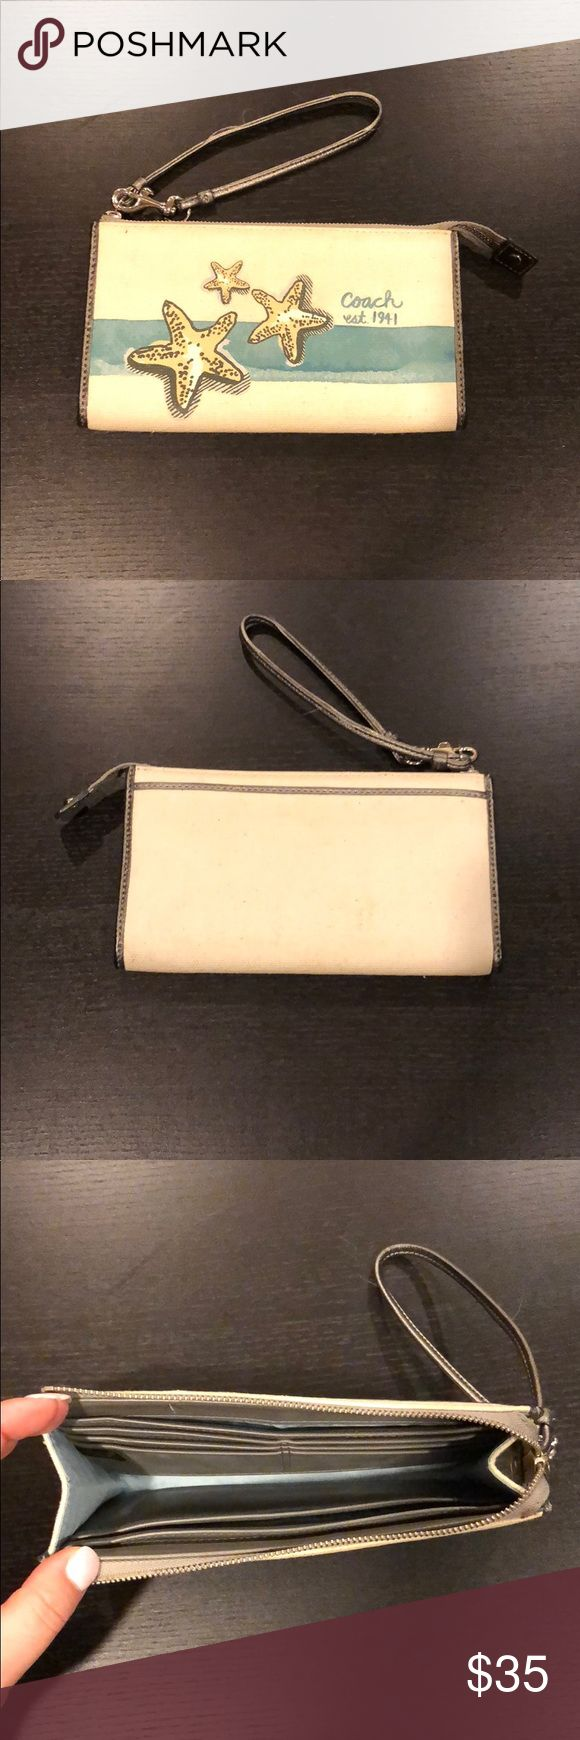 Coach Wristlet/Wallet Fun wristlet that could also be used as a wallet. Canvas material with leather trim. Six card slots inside as well as three larger slots for cash etc. Back has a large pocket as well. Large enough to fit average size cell phone and other necessities. Good condition. *Matches with purse and small makeup bag - listed separately* Coach Bags Clutches & Wristlets